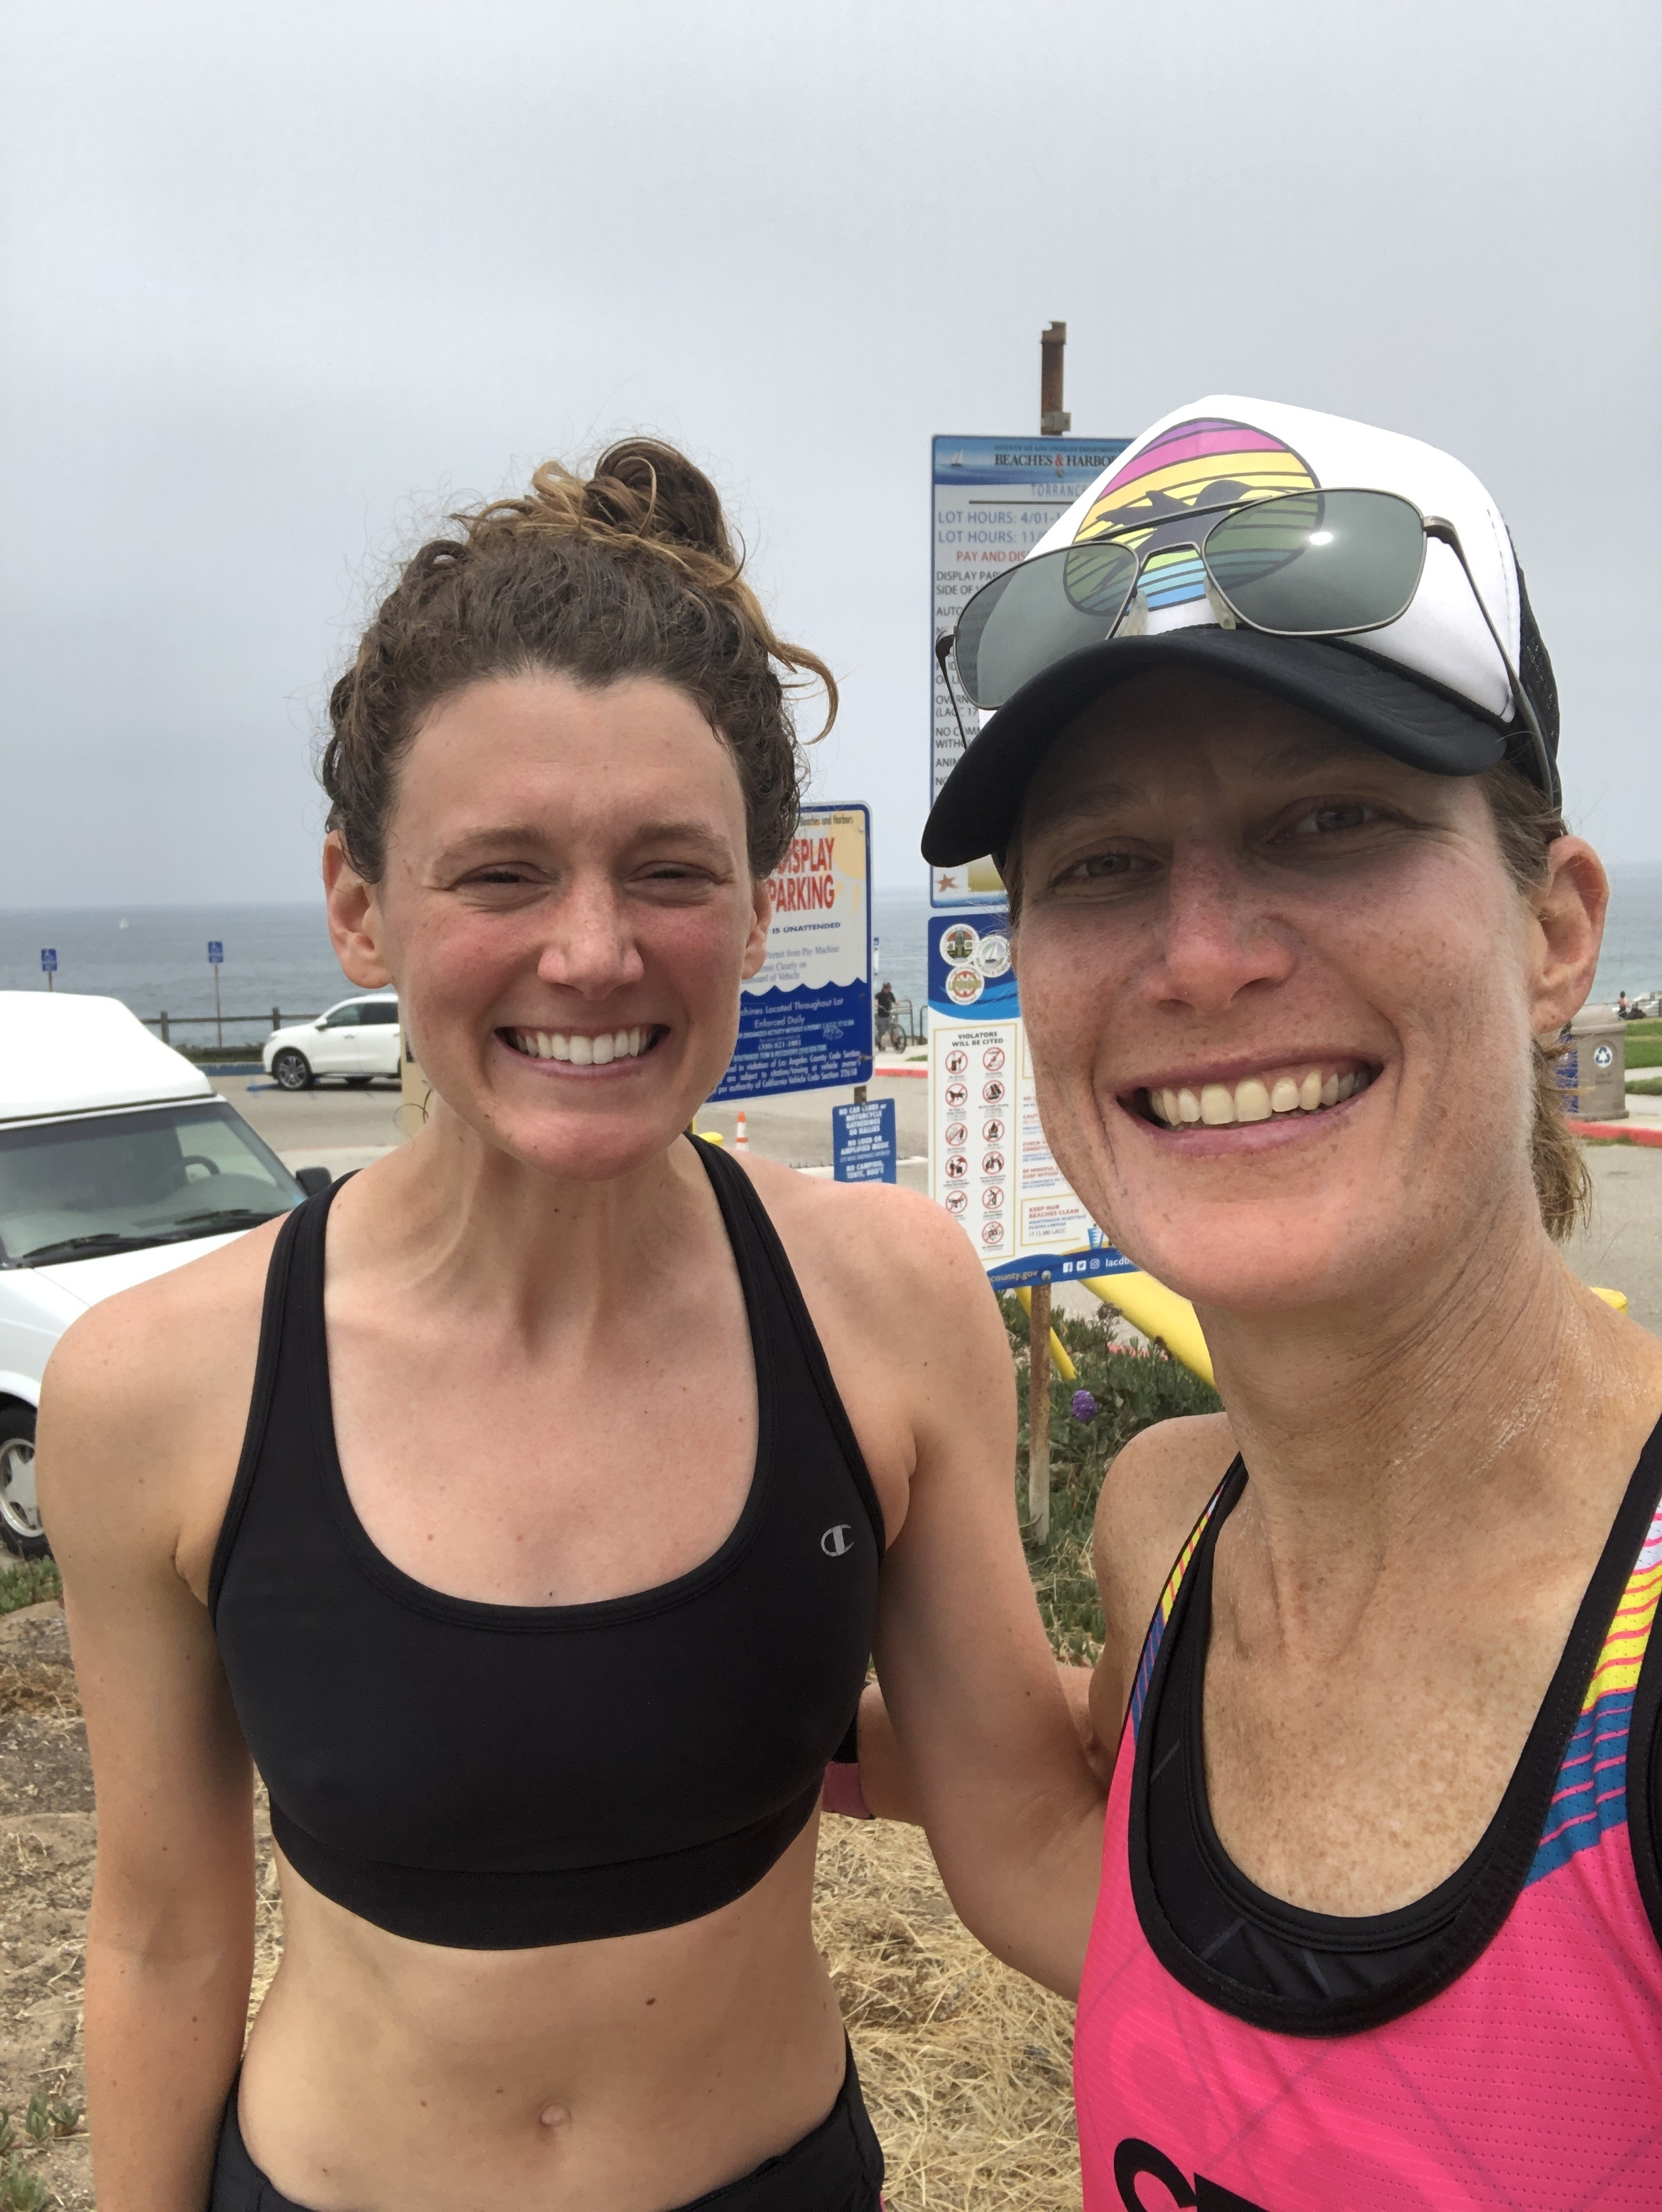 My east coast transplant teammate, Alex Watt and I after our run through Palos Verdes.